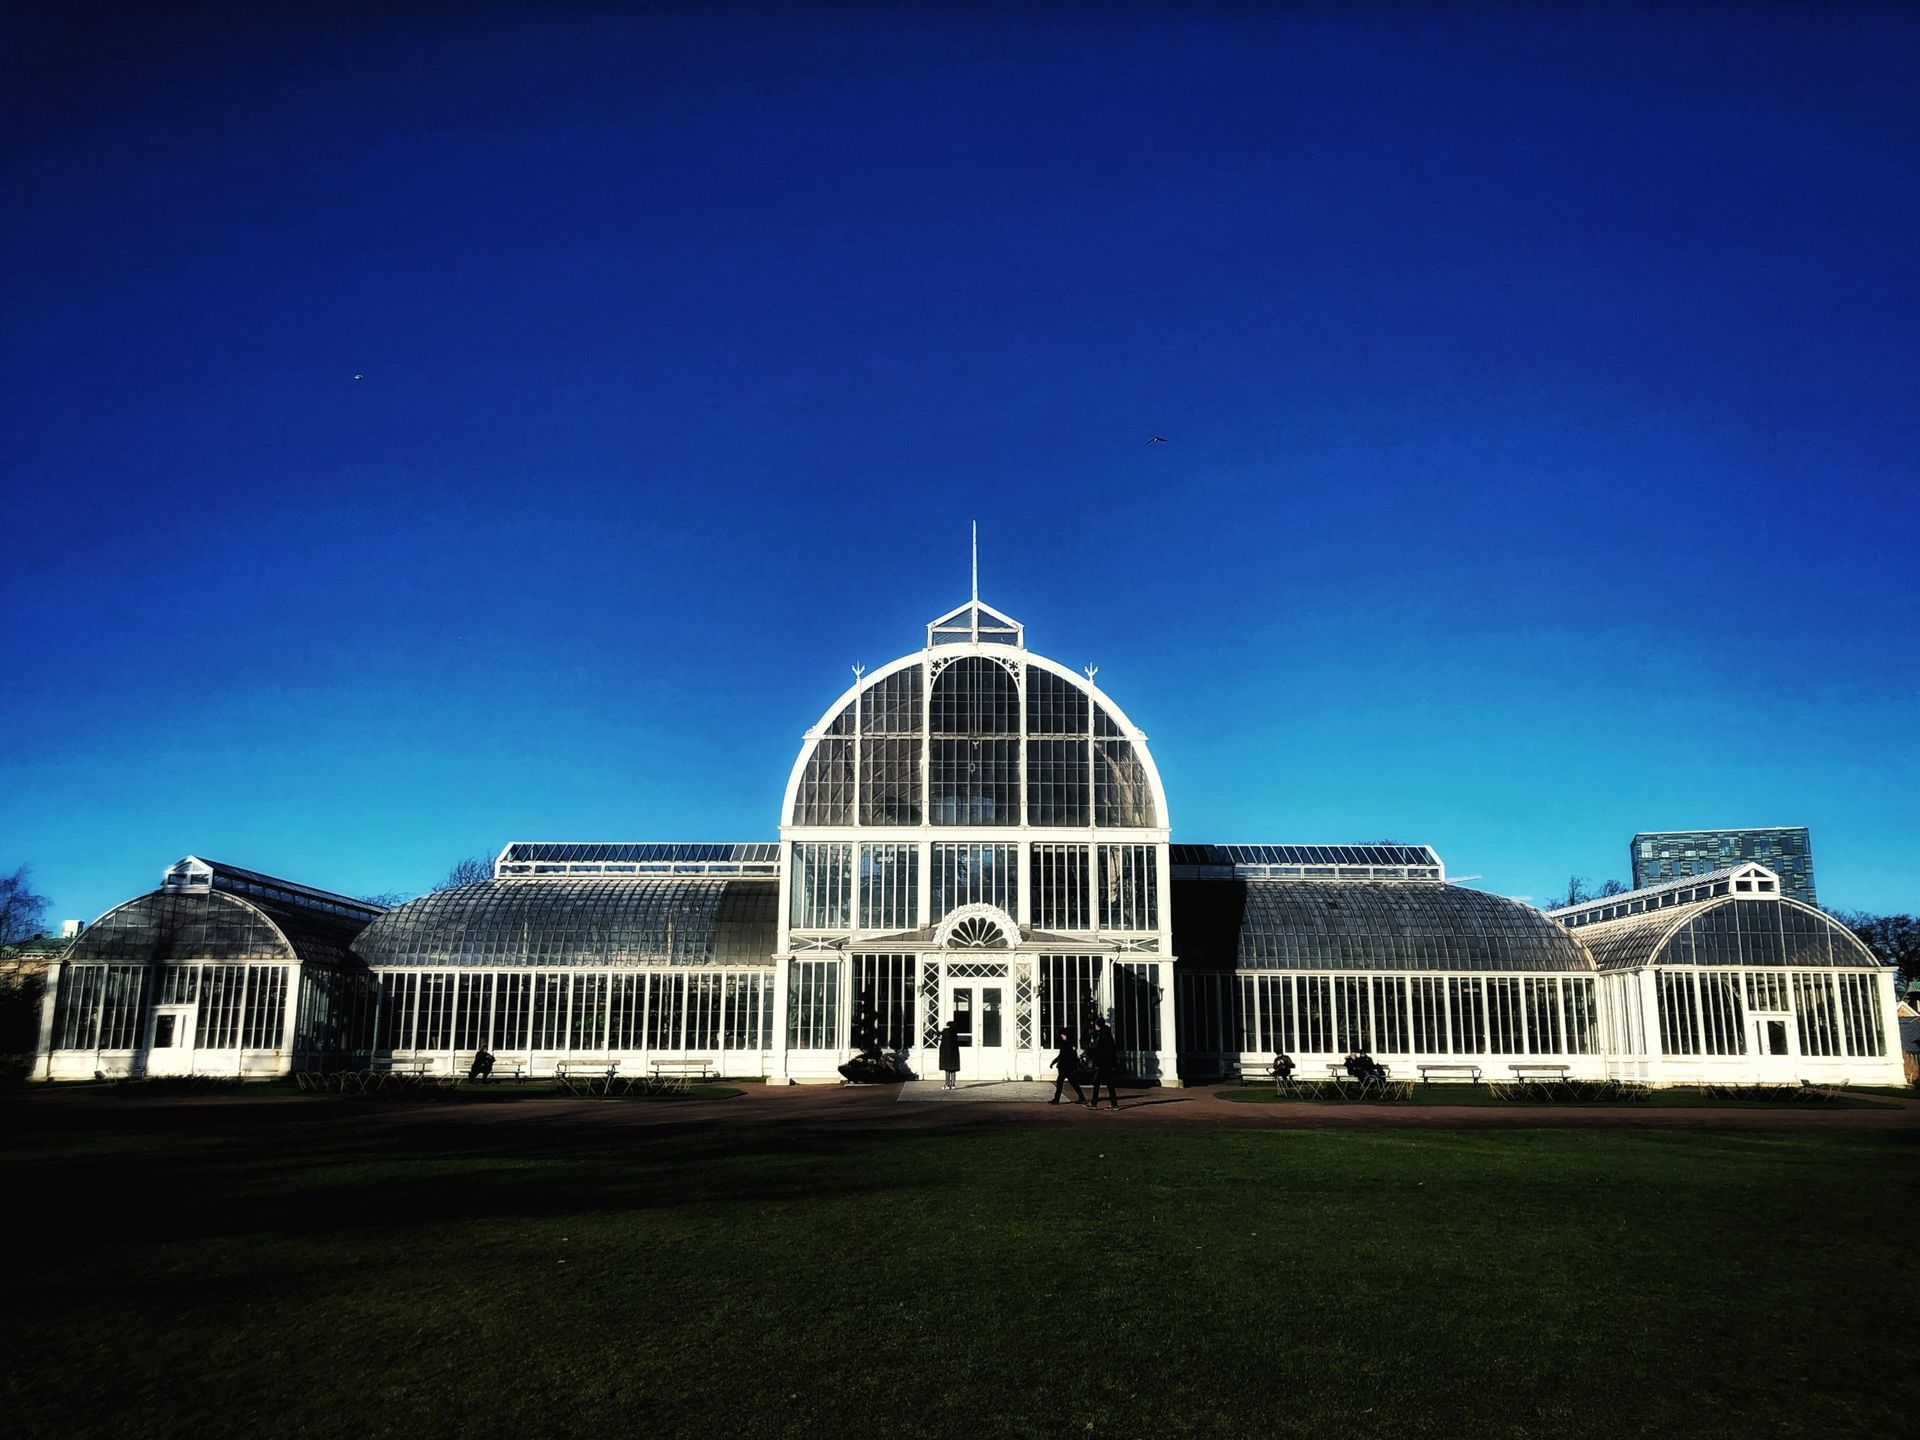 A large greenhouse at night.